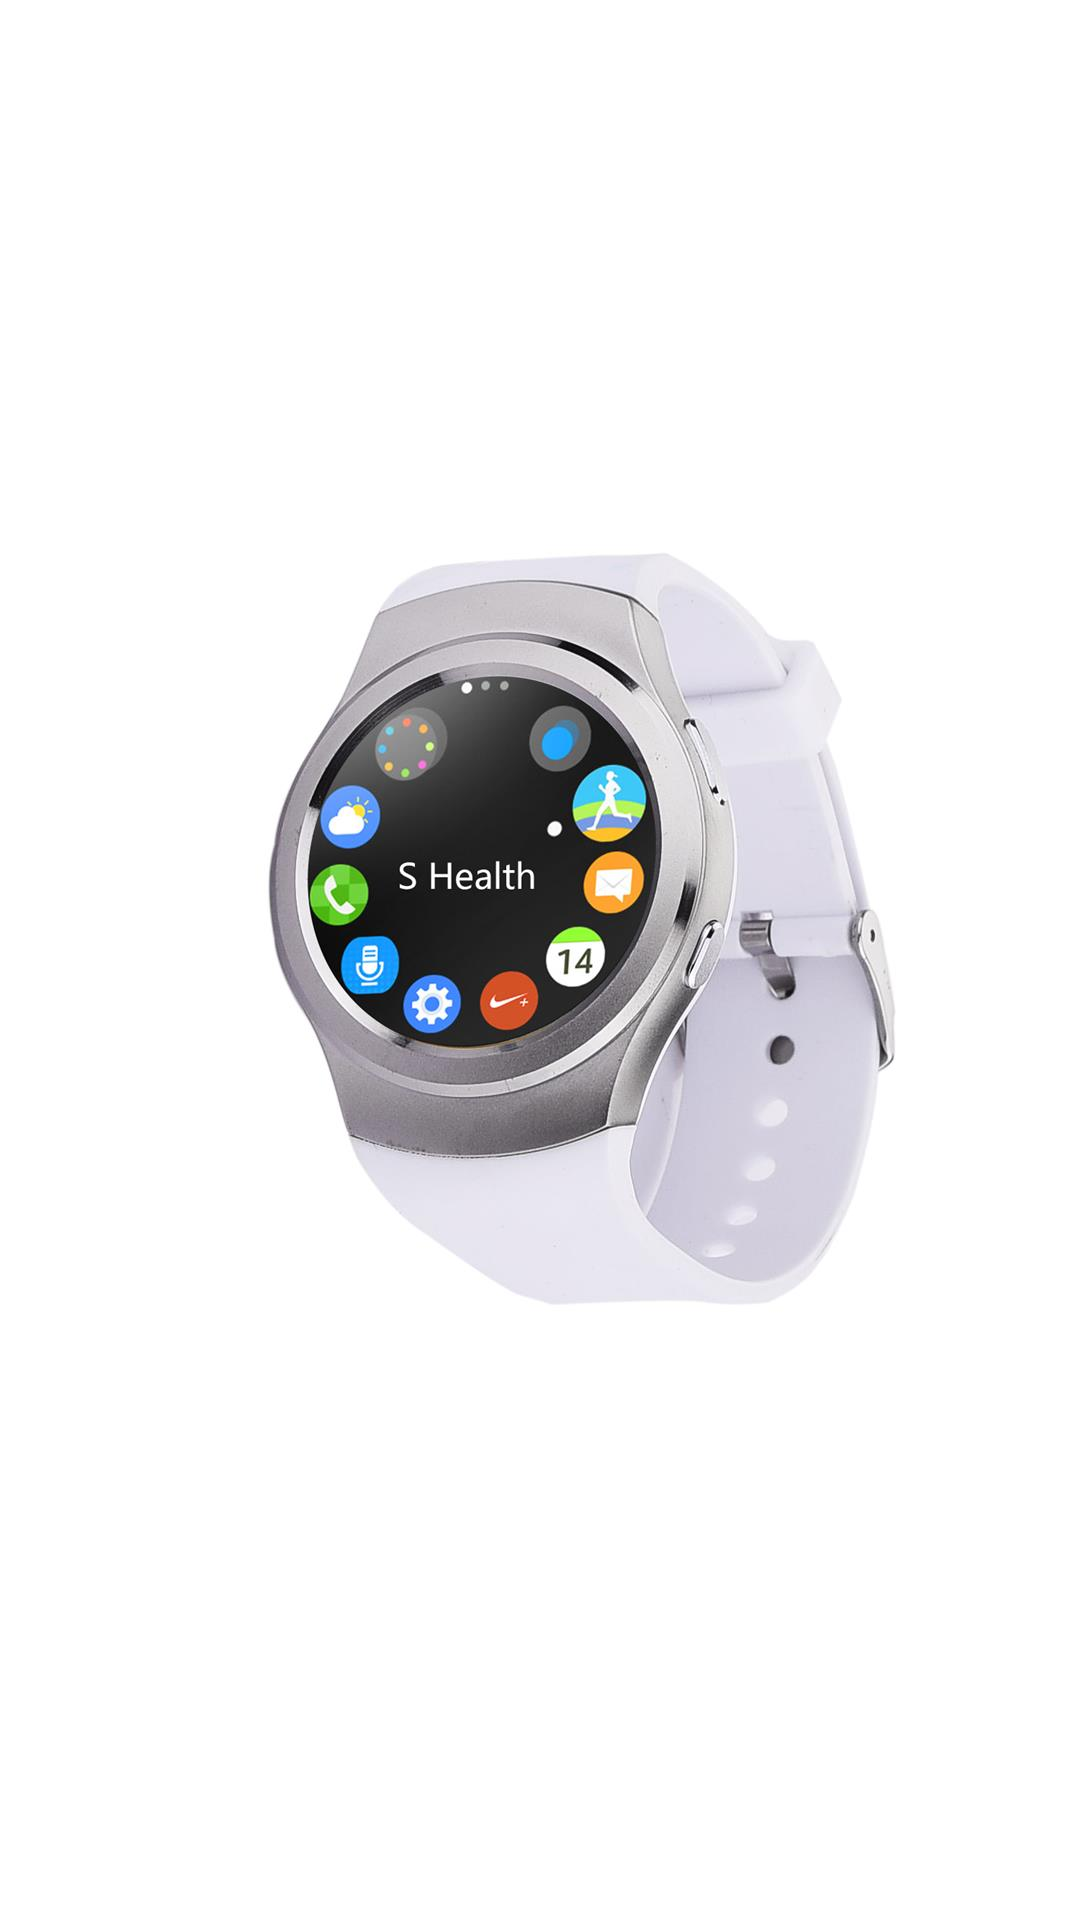 Bingo C4 White Smartwatch With Sim Support Full Disc Screen Touch -Android & IOS Support